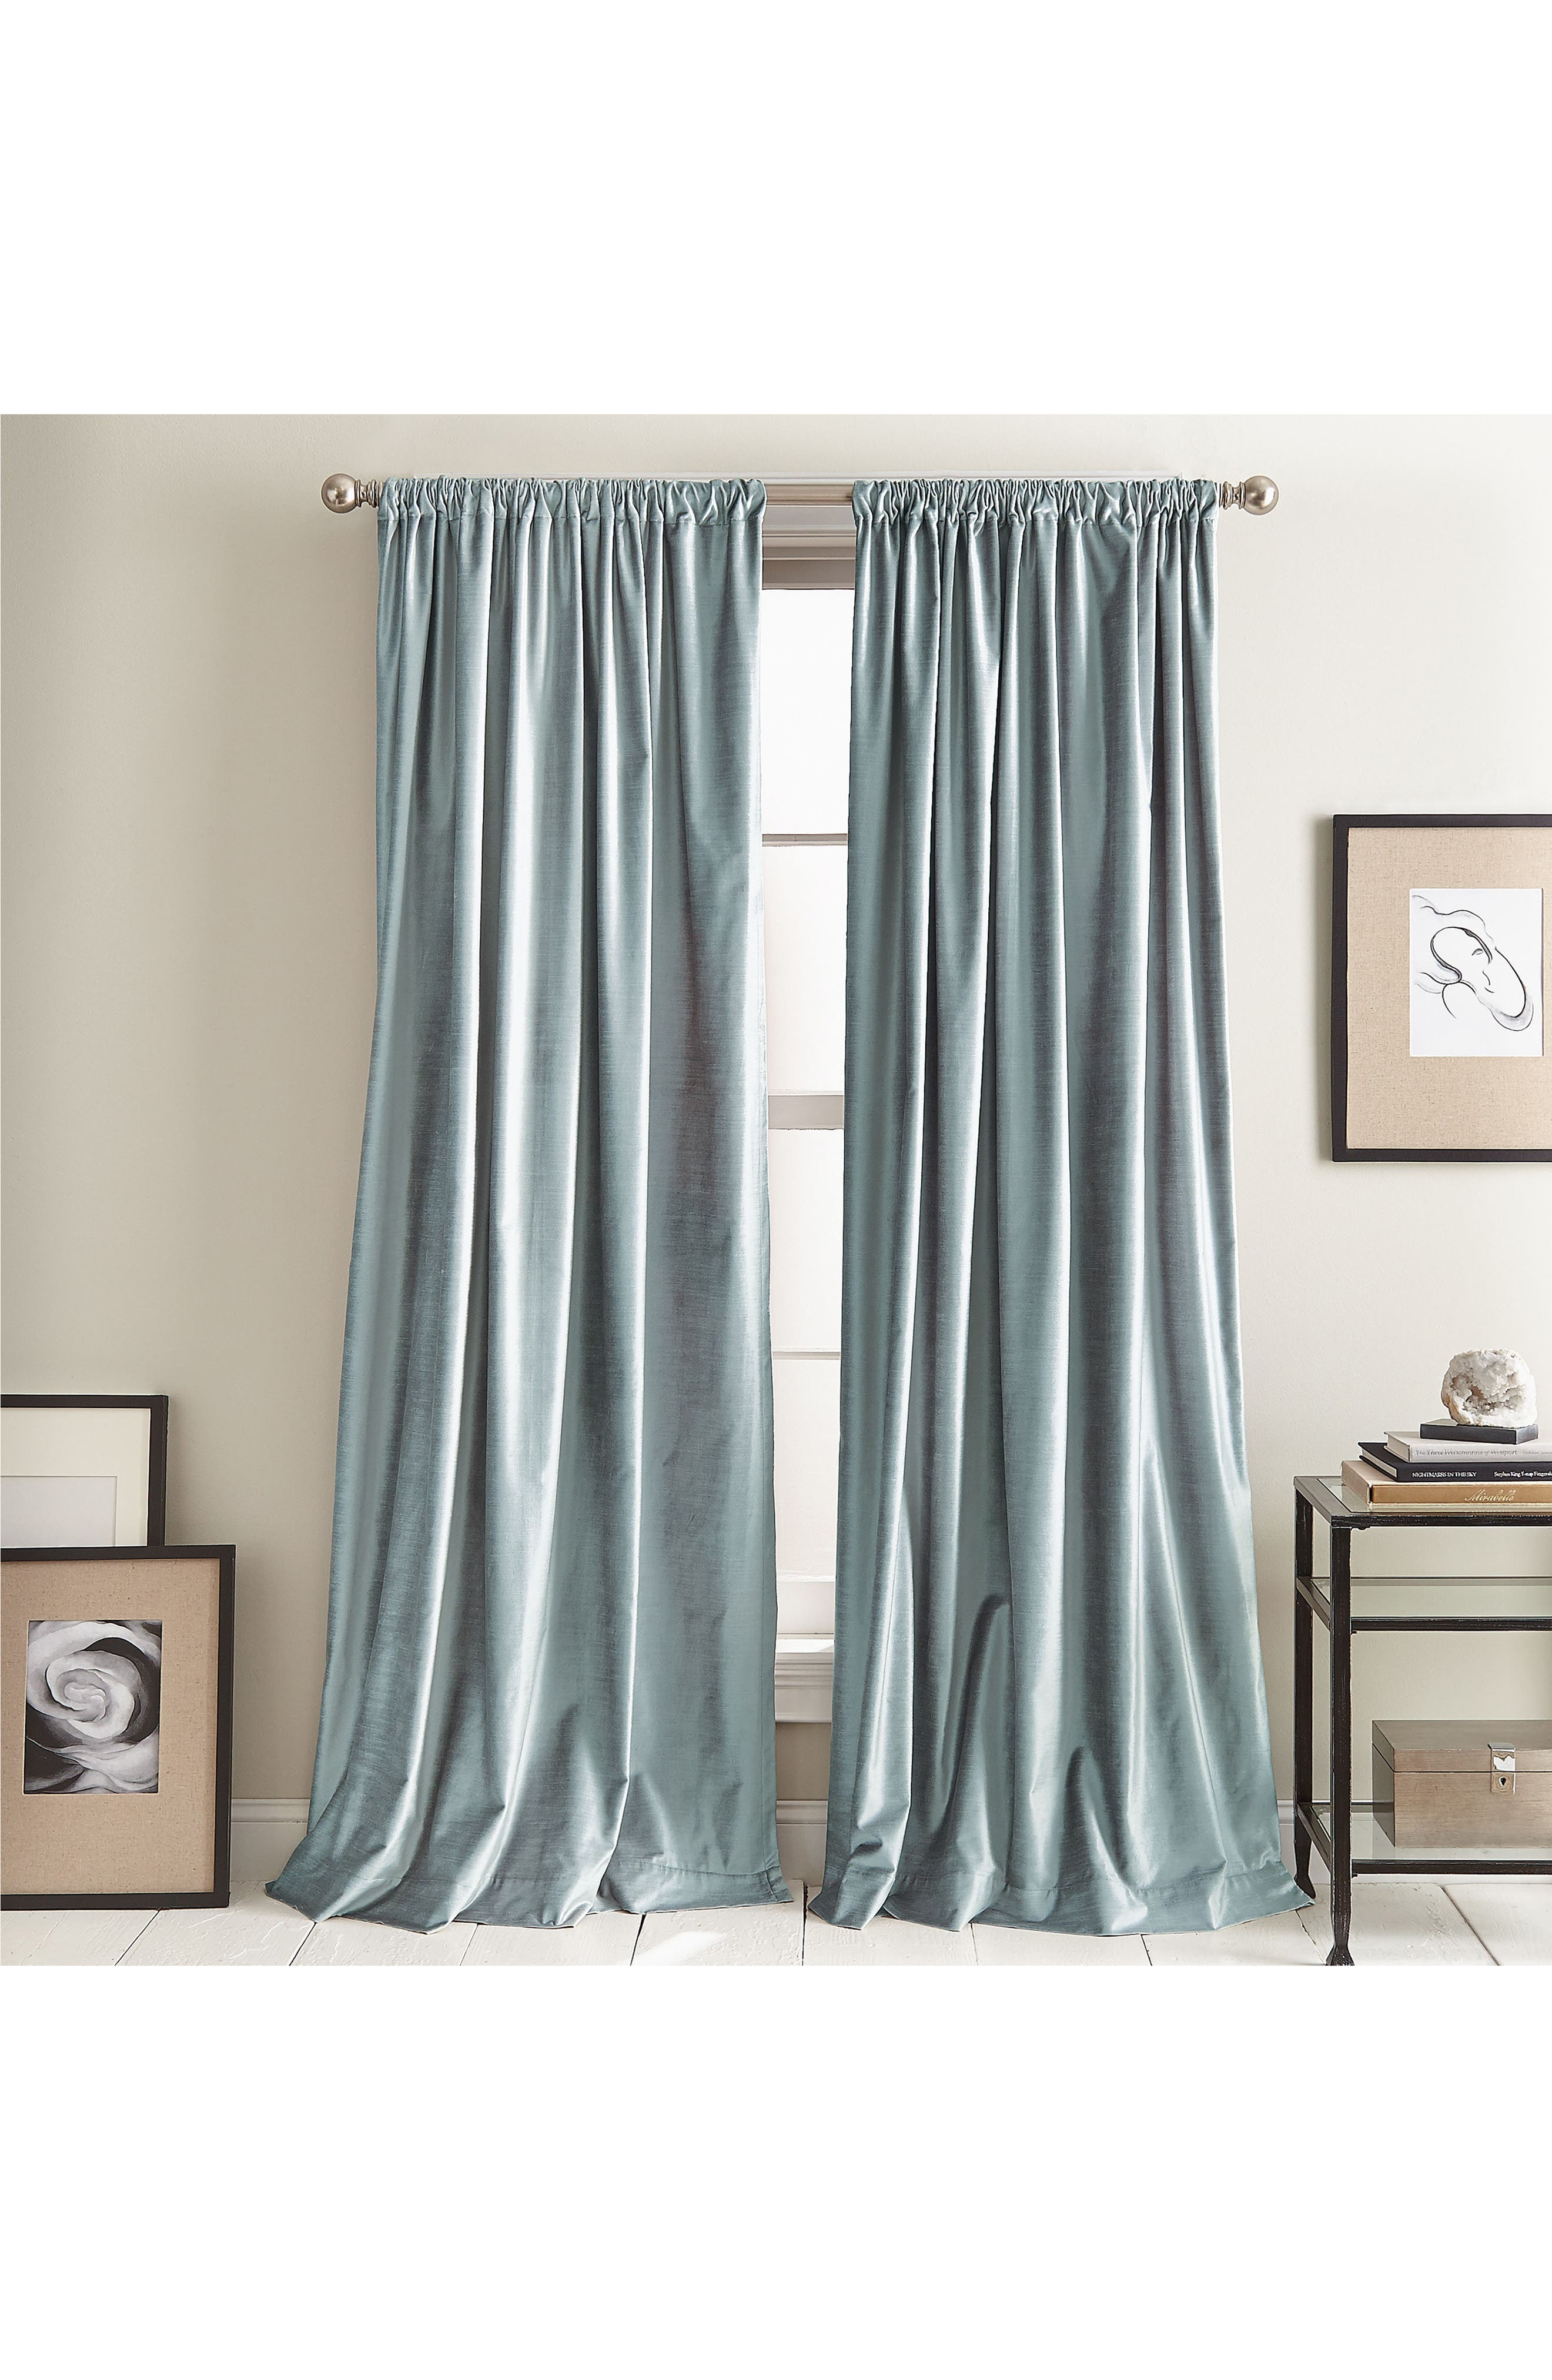 DKNY Modern Slub Velvet Window Panels